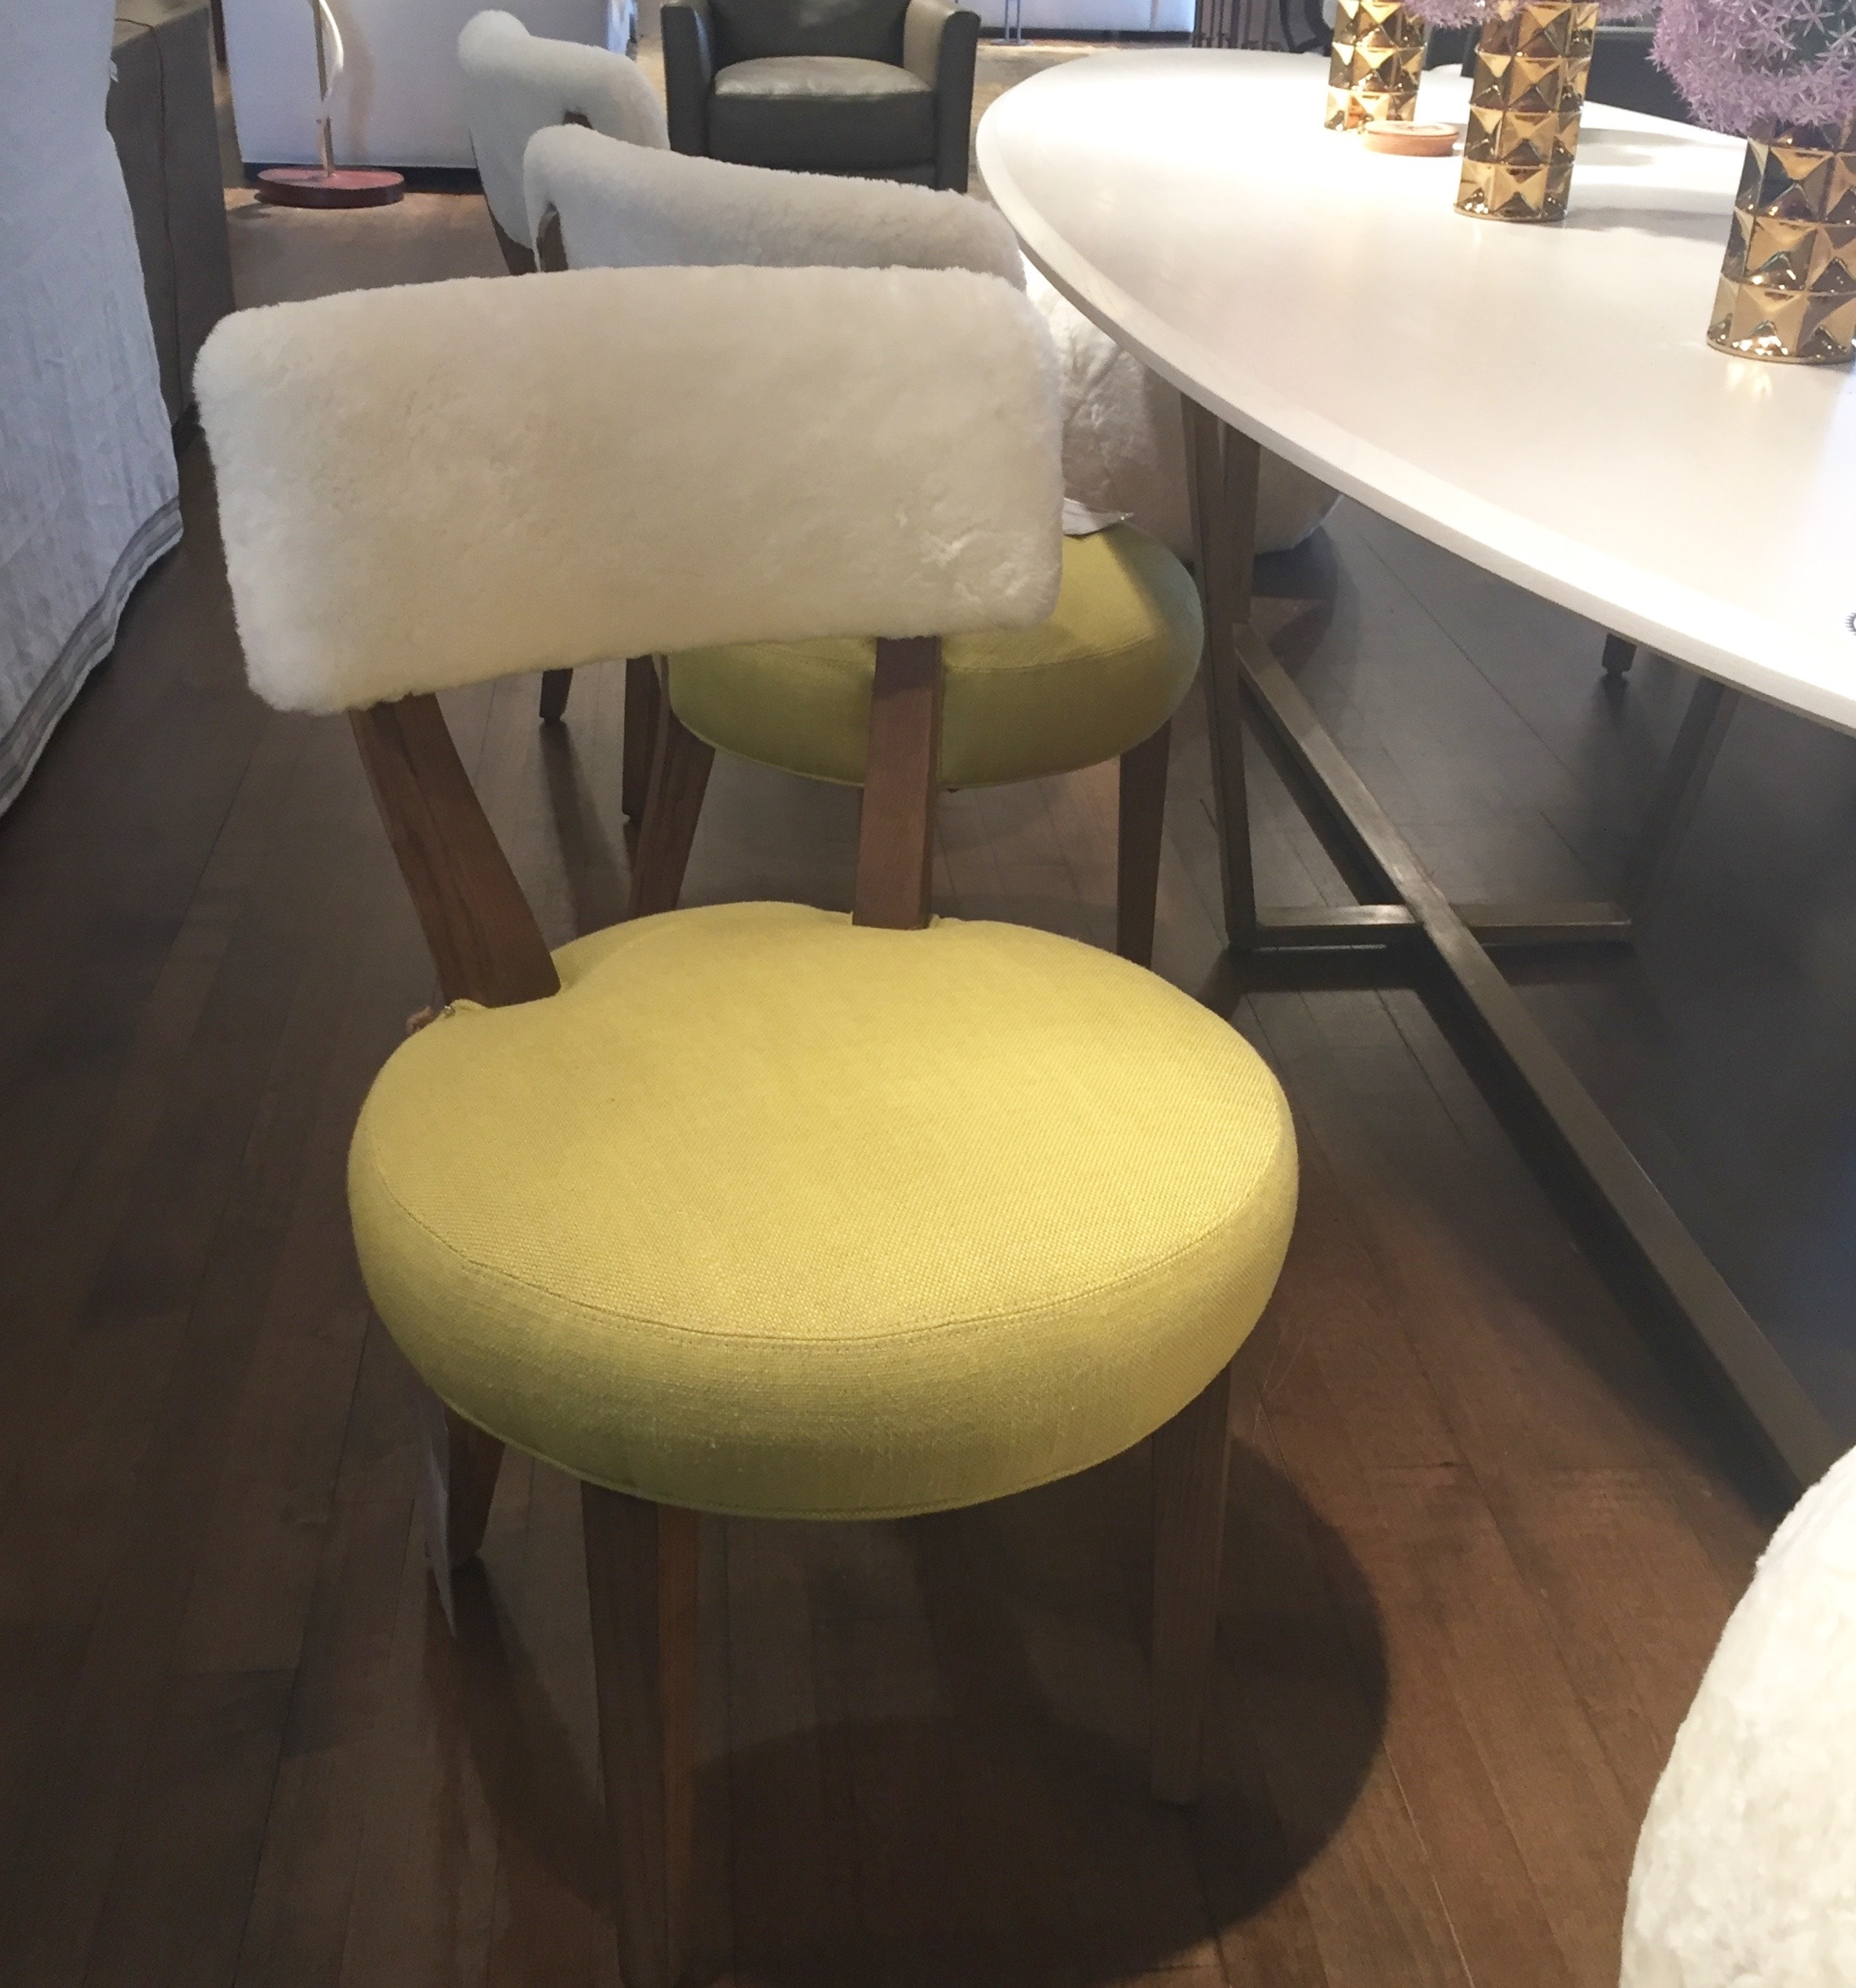 Dining chairs at Lee Industries with flirty shearling backs for extra comfort during long dinner parties.